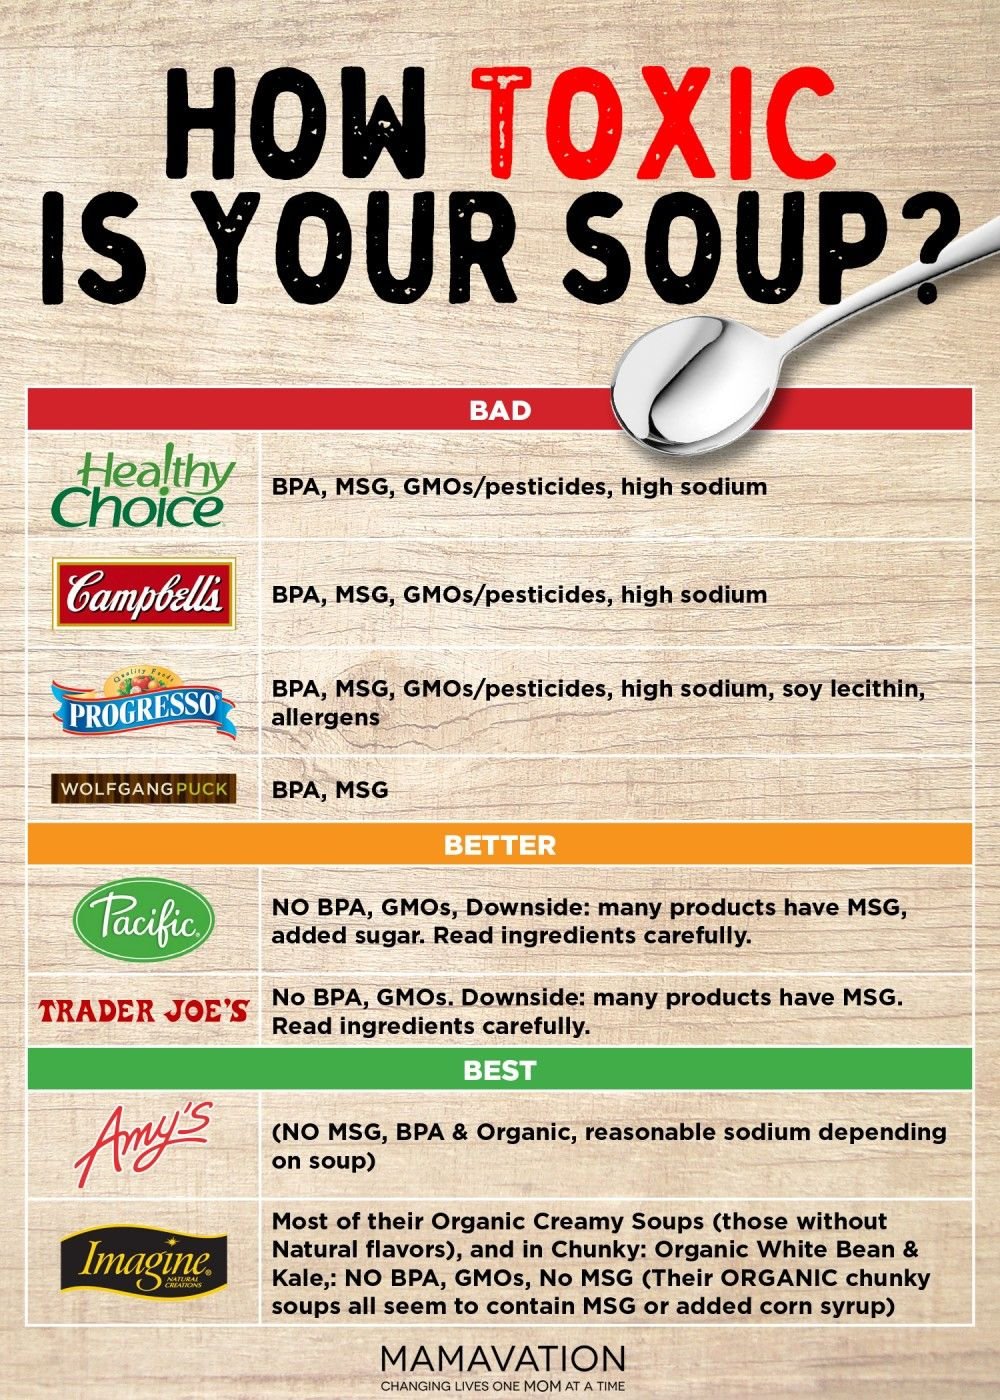 Toxic Canned Soup - Why You Should Make Your Own Soup